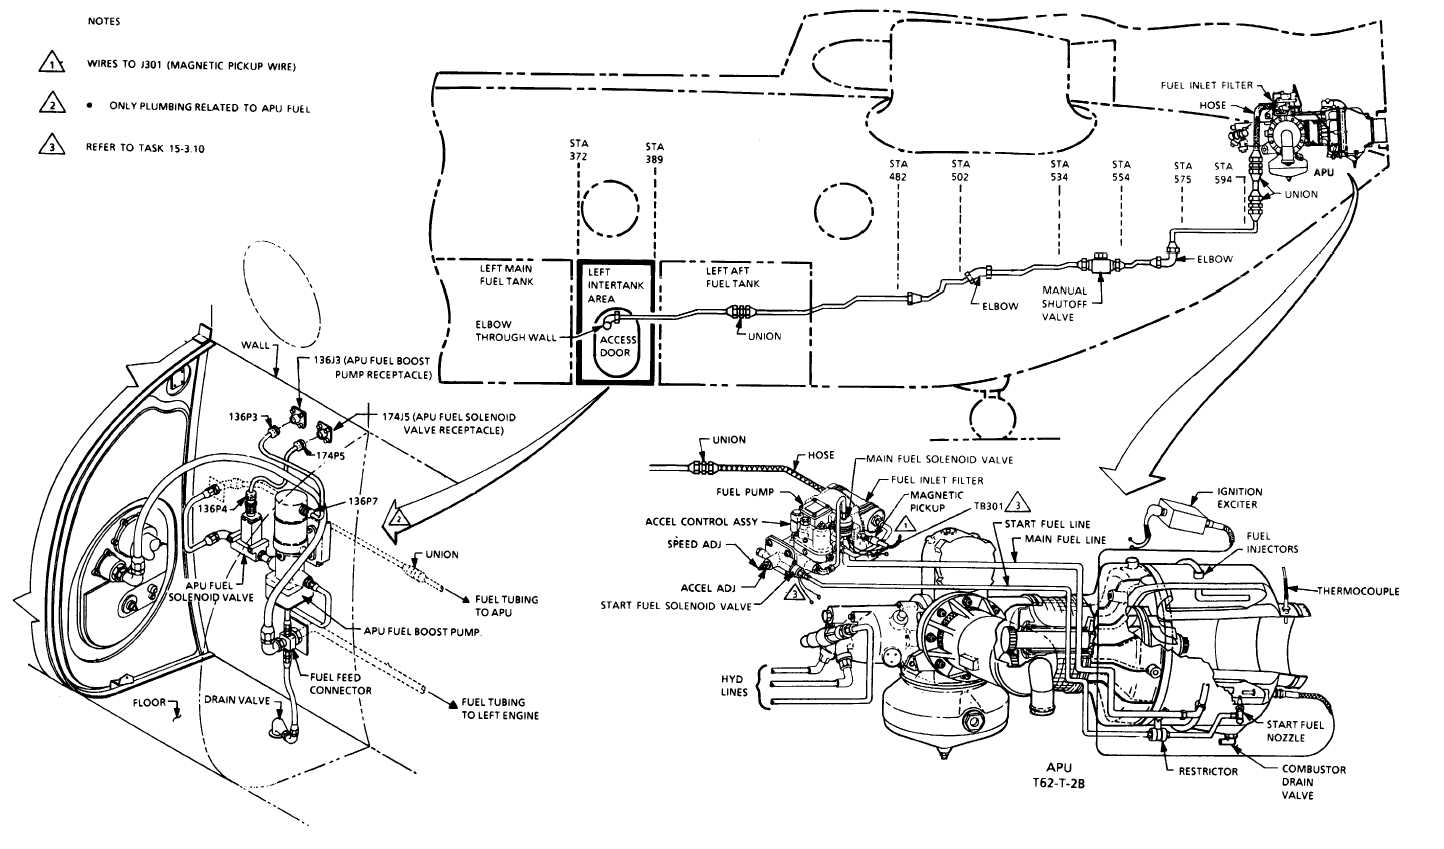 Apu Fuel System Piping Diagram Line Tm 55 1520 240 T 15 33 Change 8